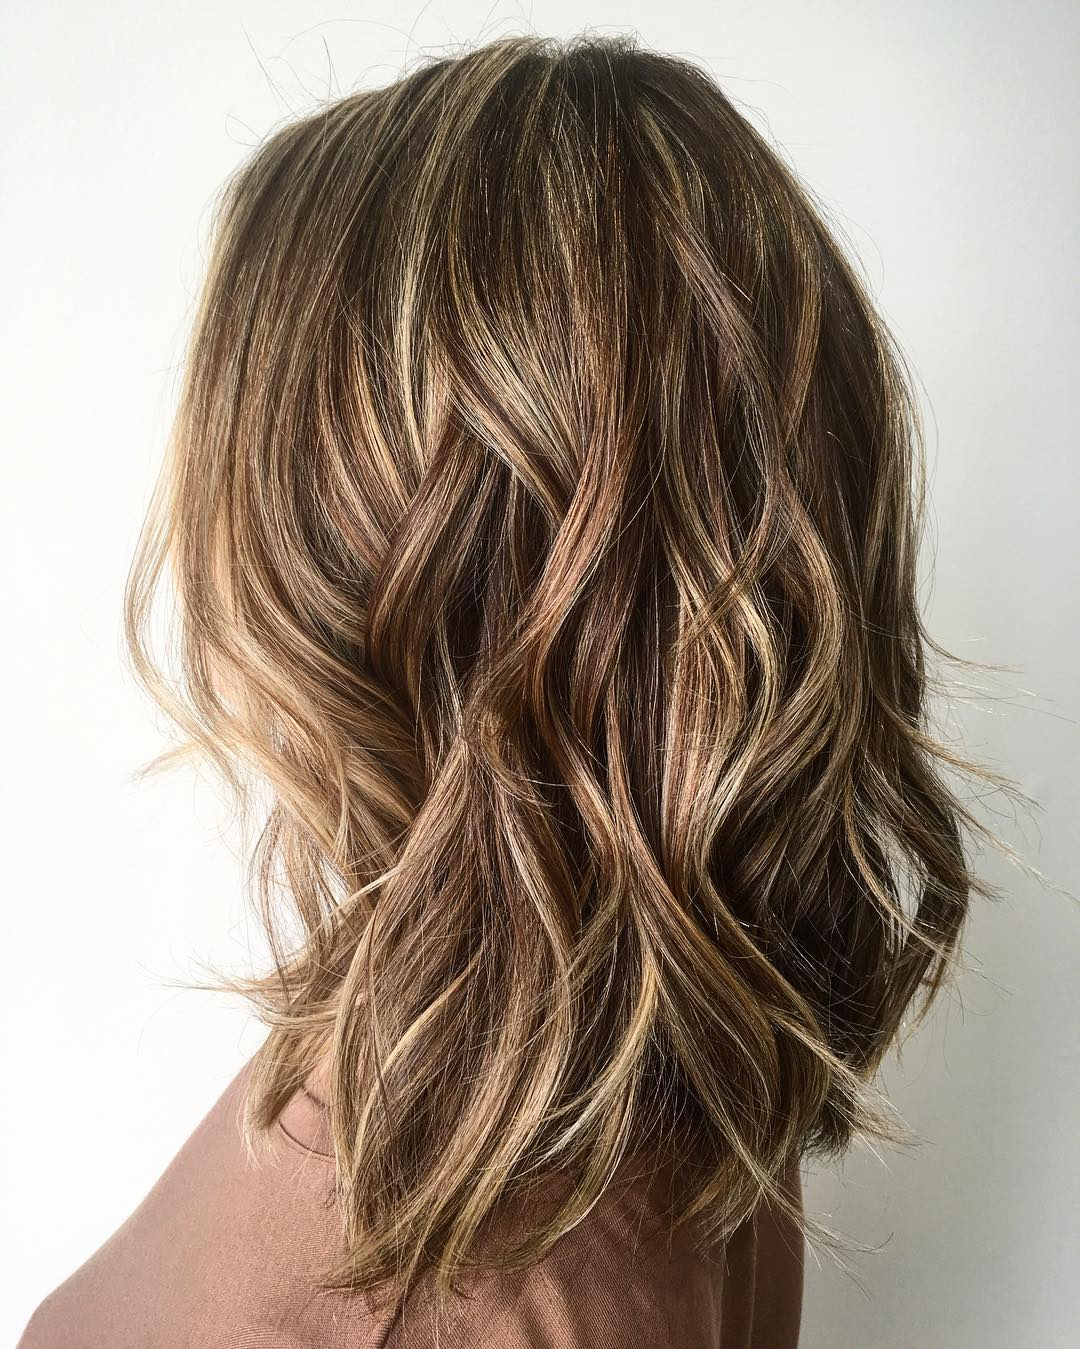 60 Fun and Flattering Medium Hairstyles for Women of All Ages